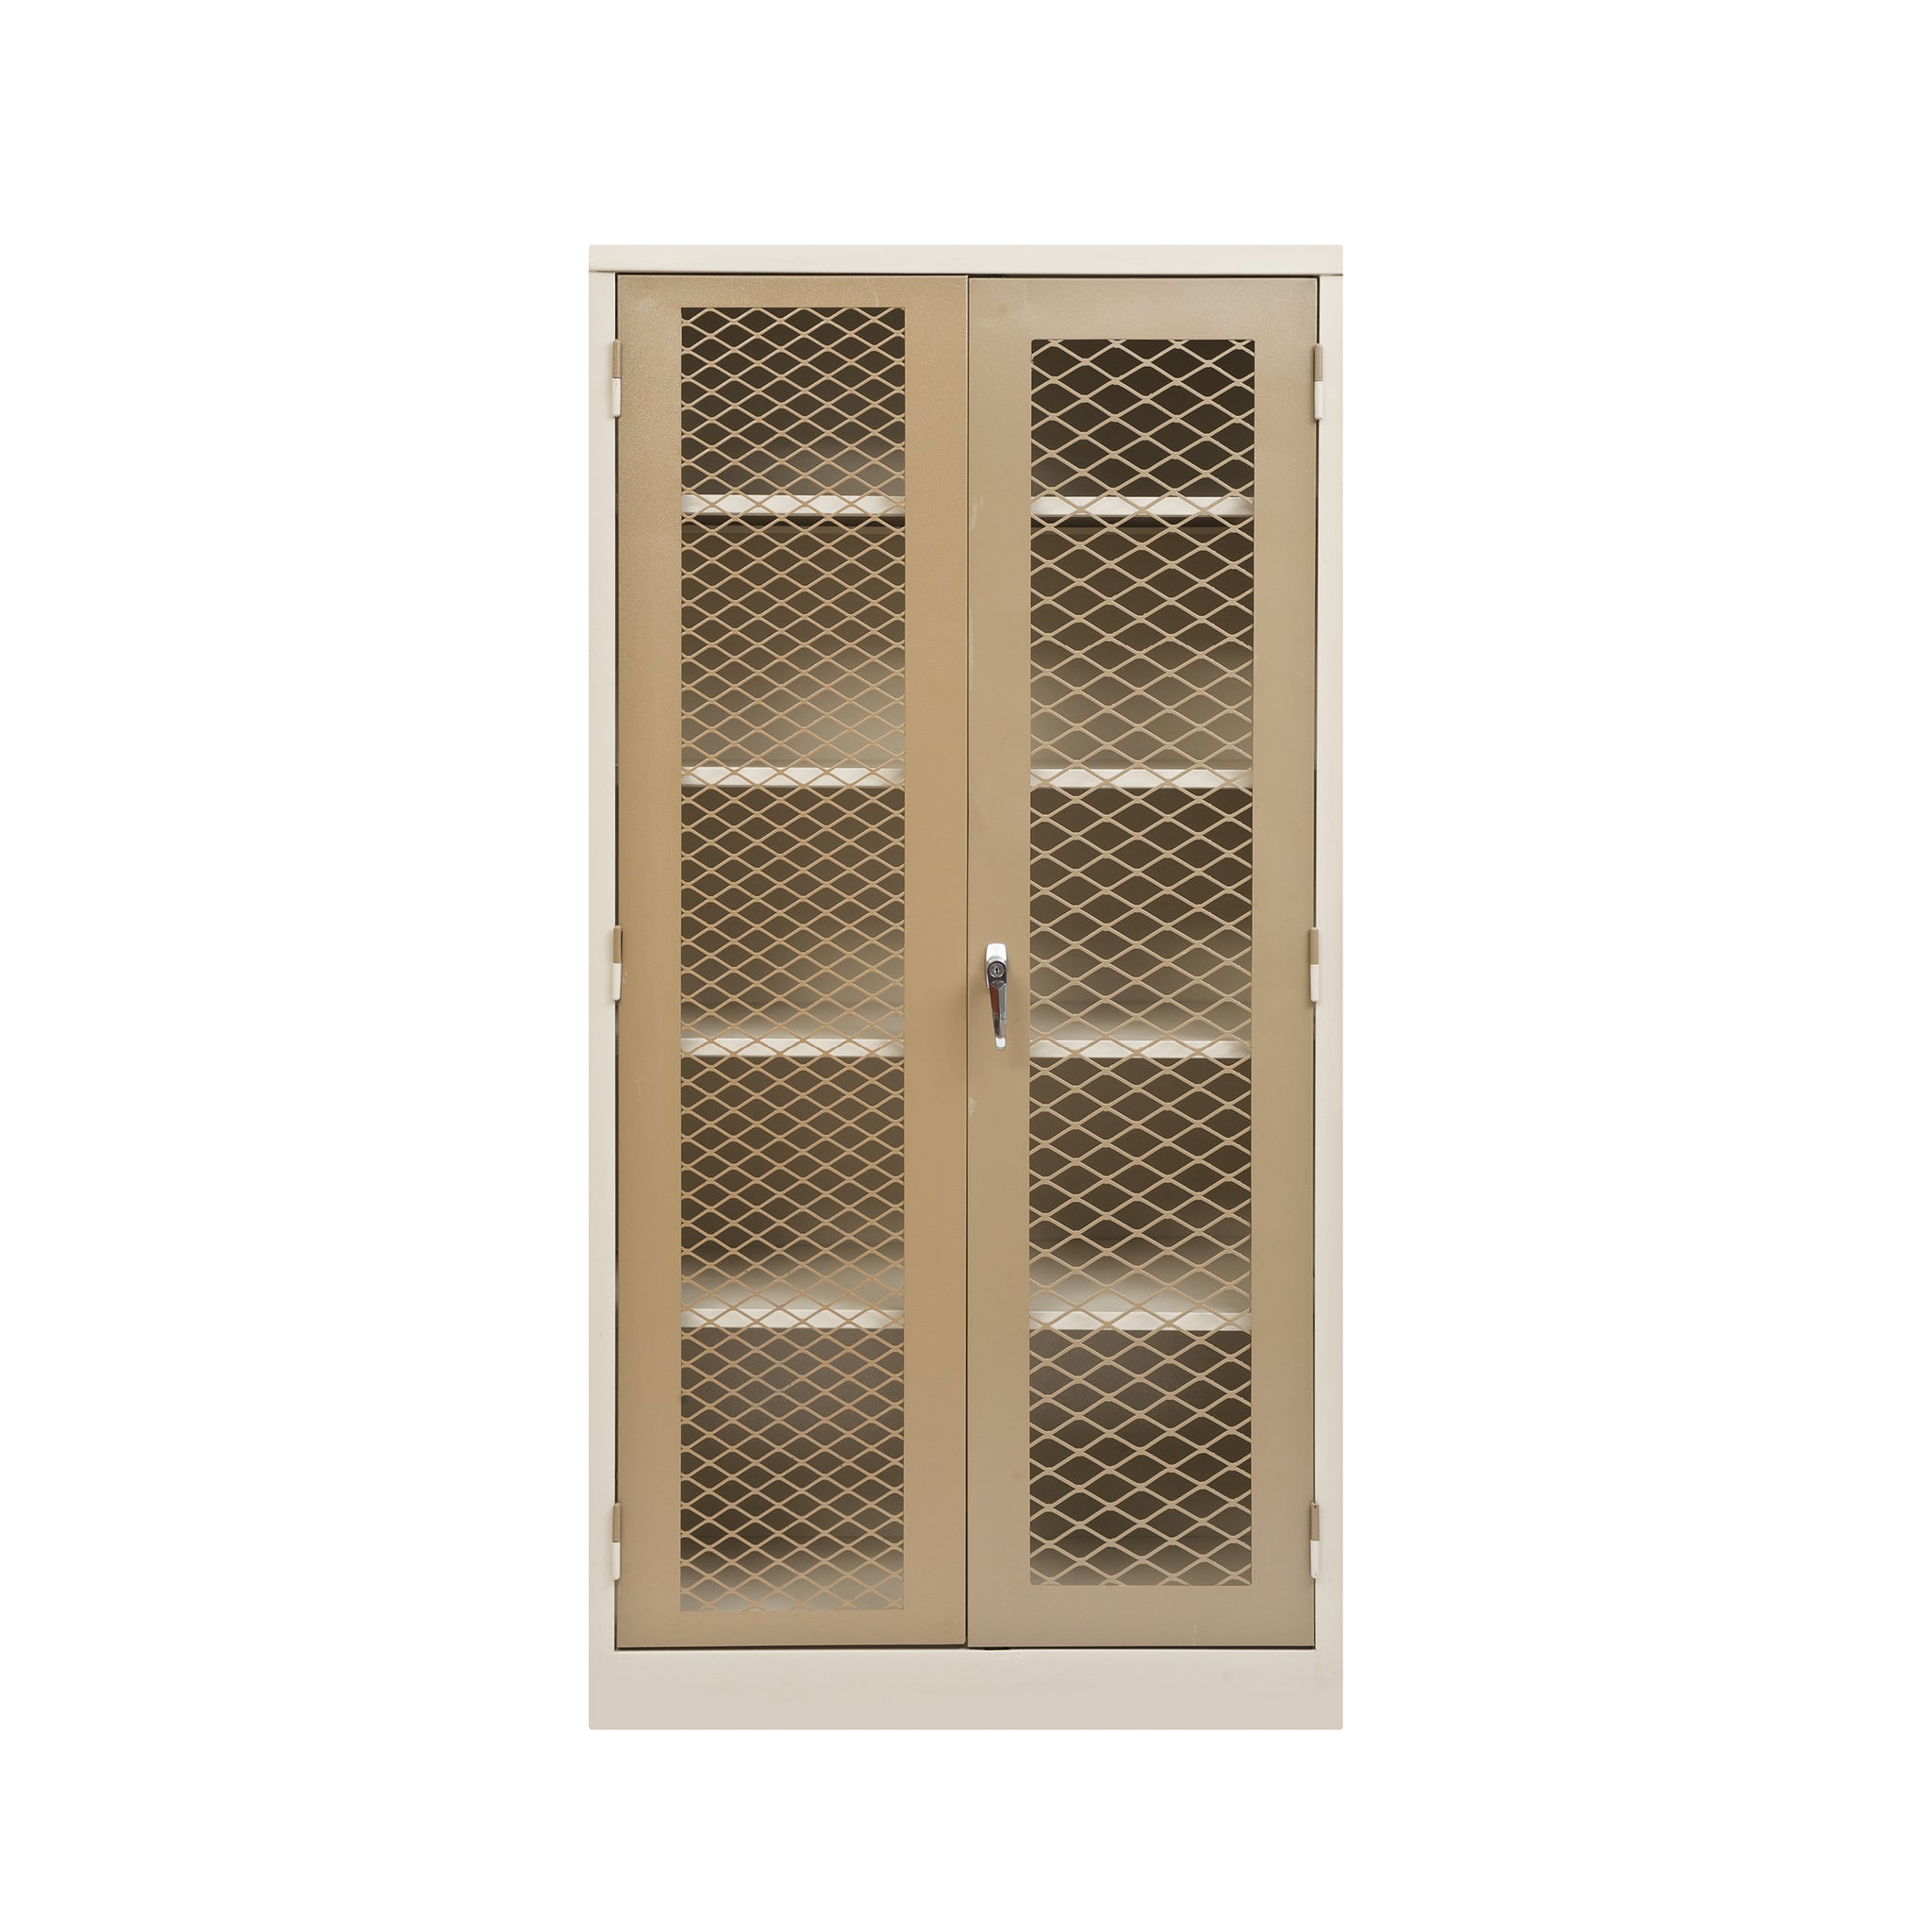 Hedcor Custom Lockers